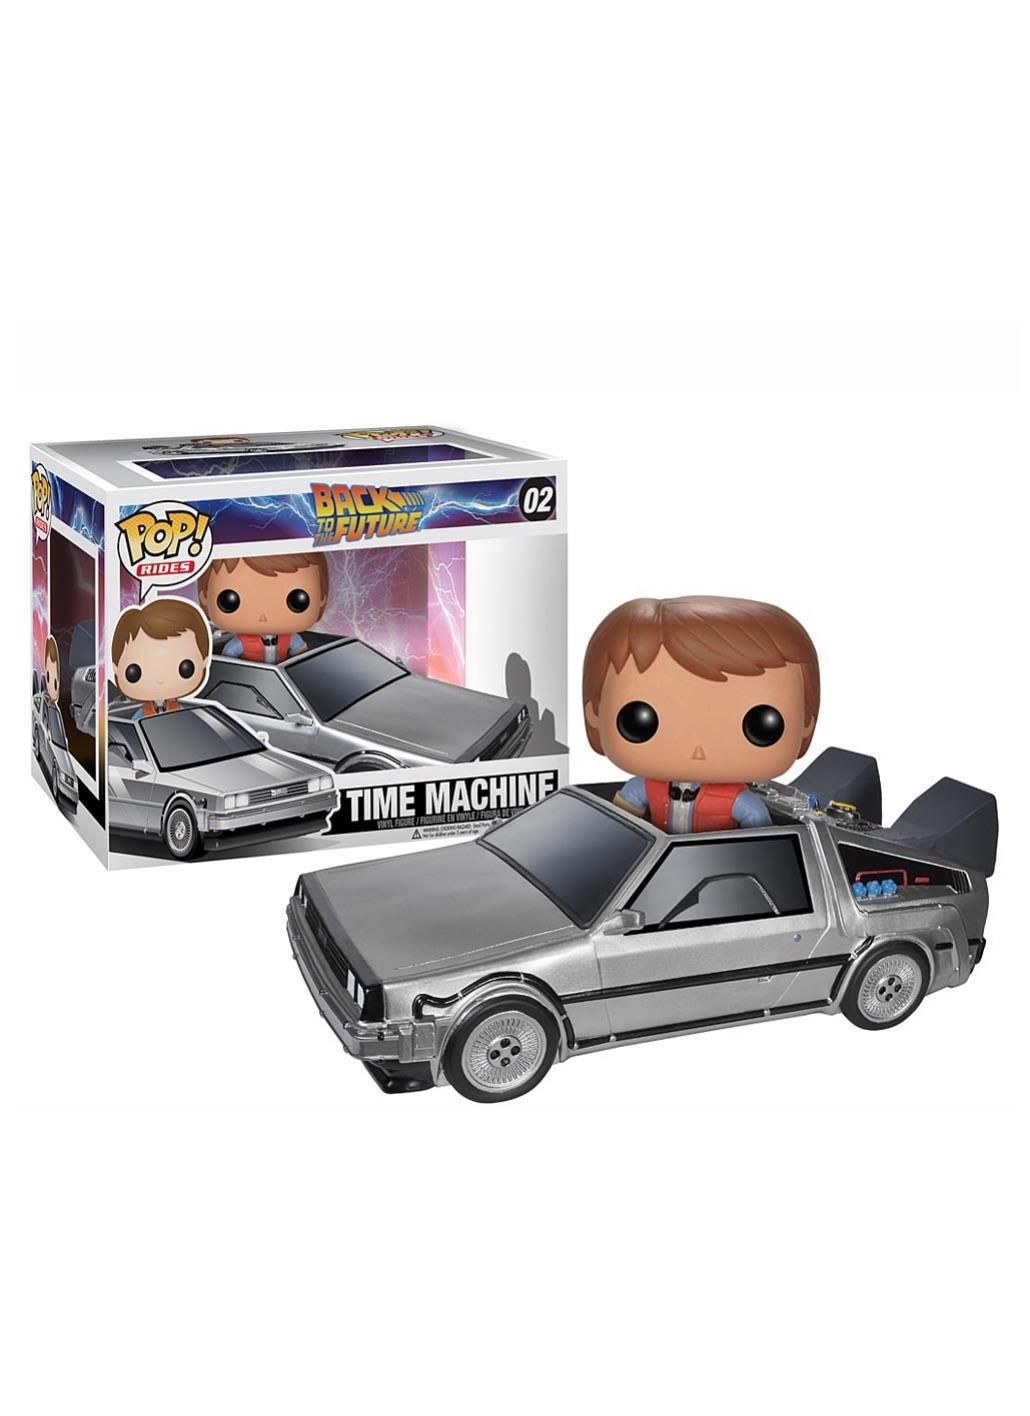 BACK TO THE FUTURE DELOREAN CAR WITH MARTY MCFLY P